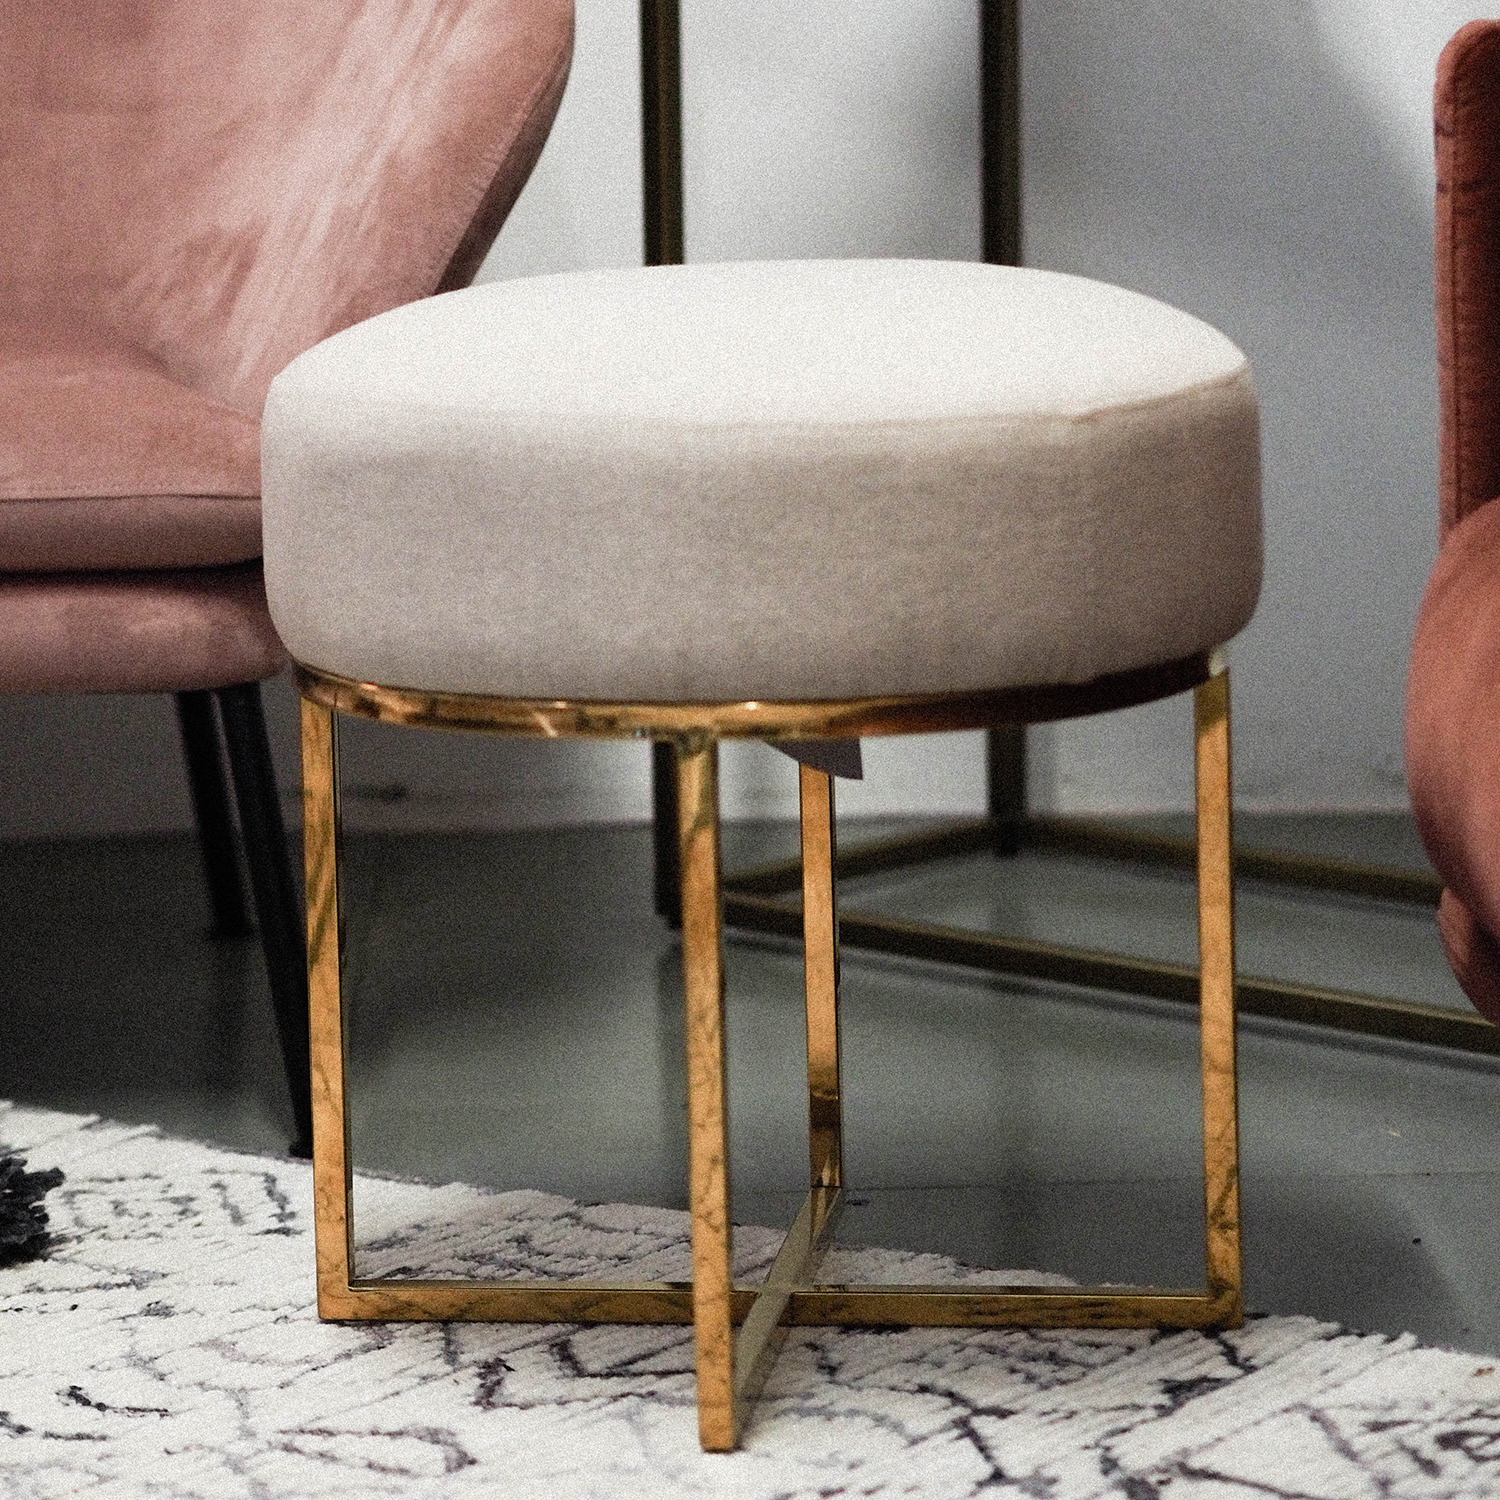 5 Ways Structube Is Becoming The Zara of Home Decor - Mel Inspired